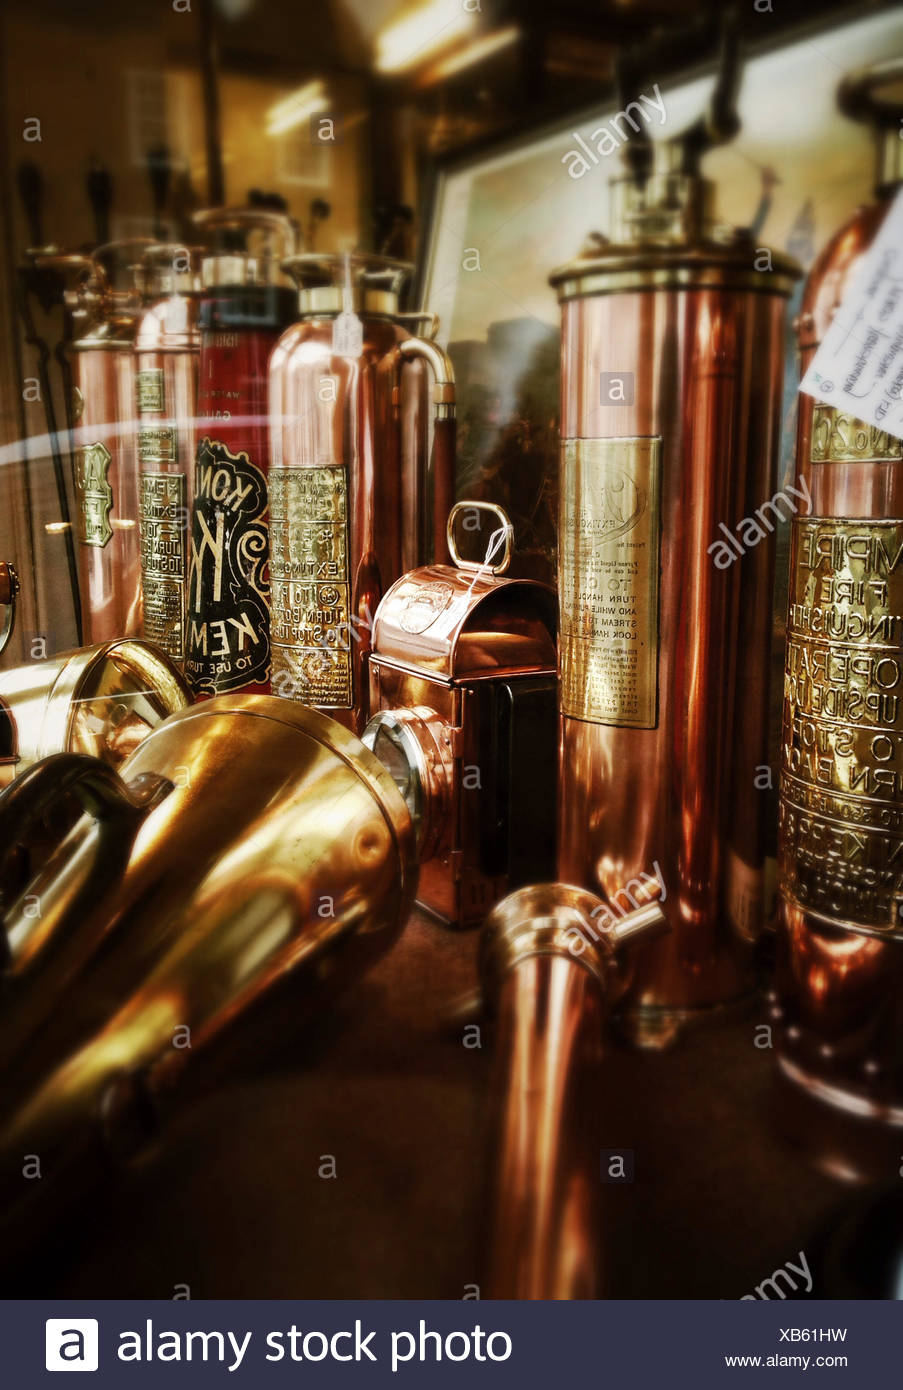 Old Stock Beer Stock Photos & Old Stock Beer Stock Images - Alamy